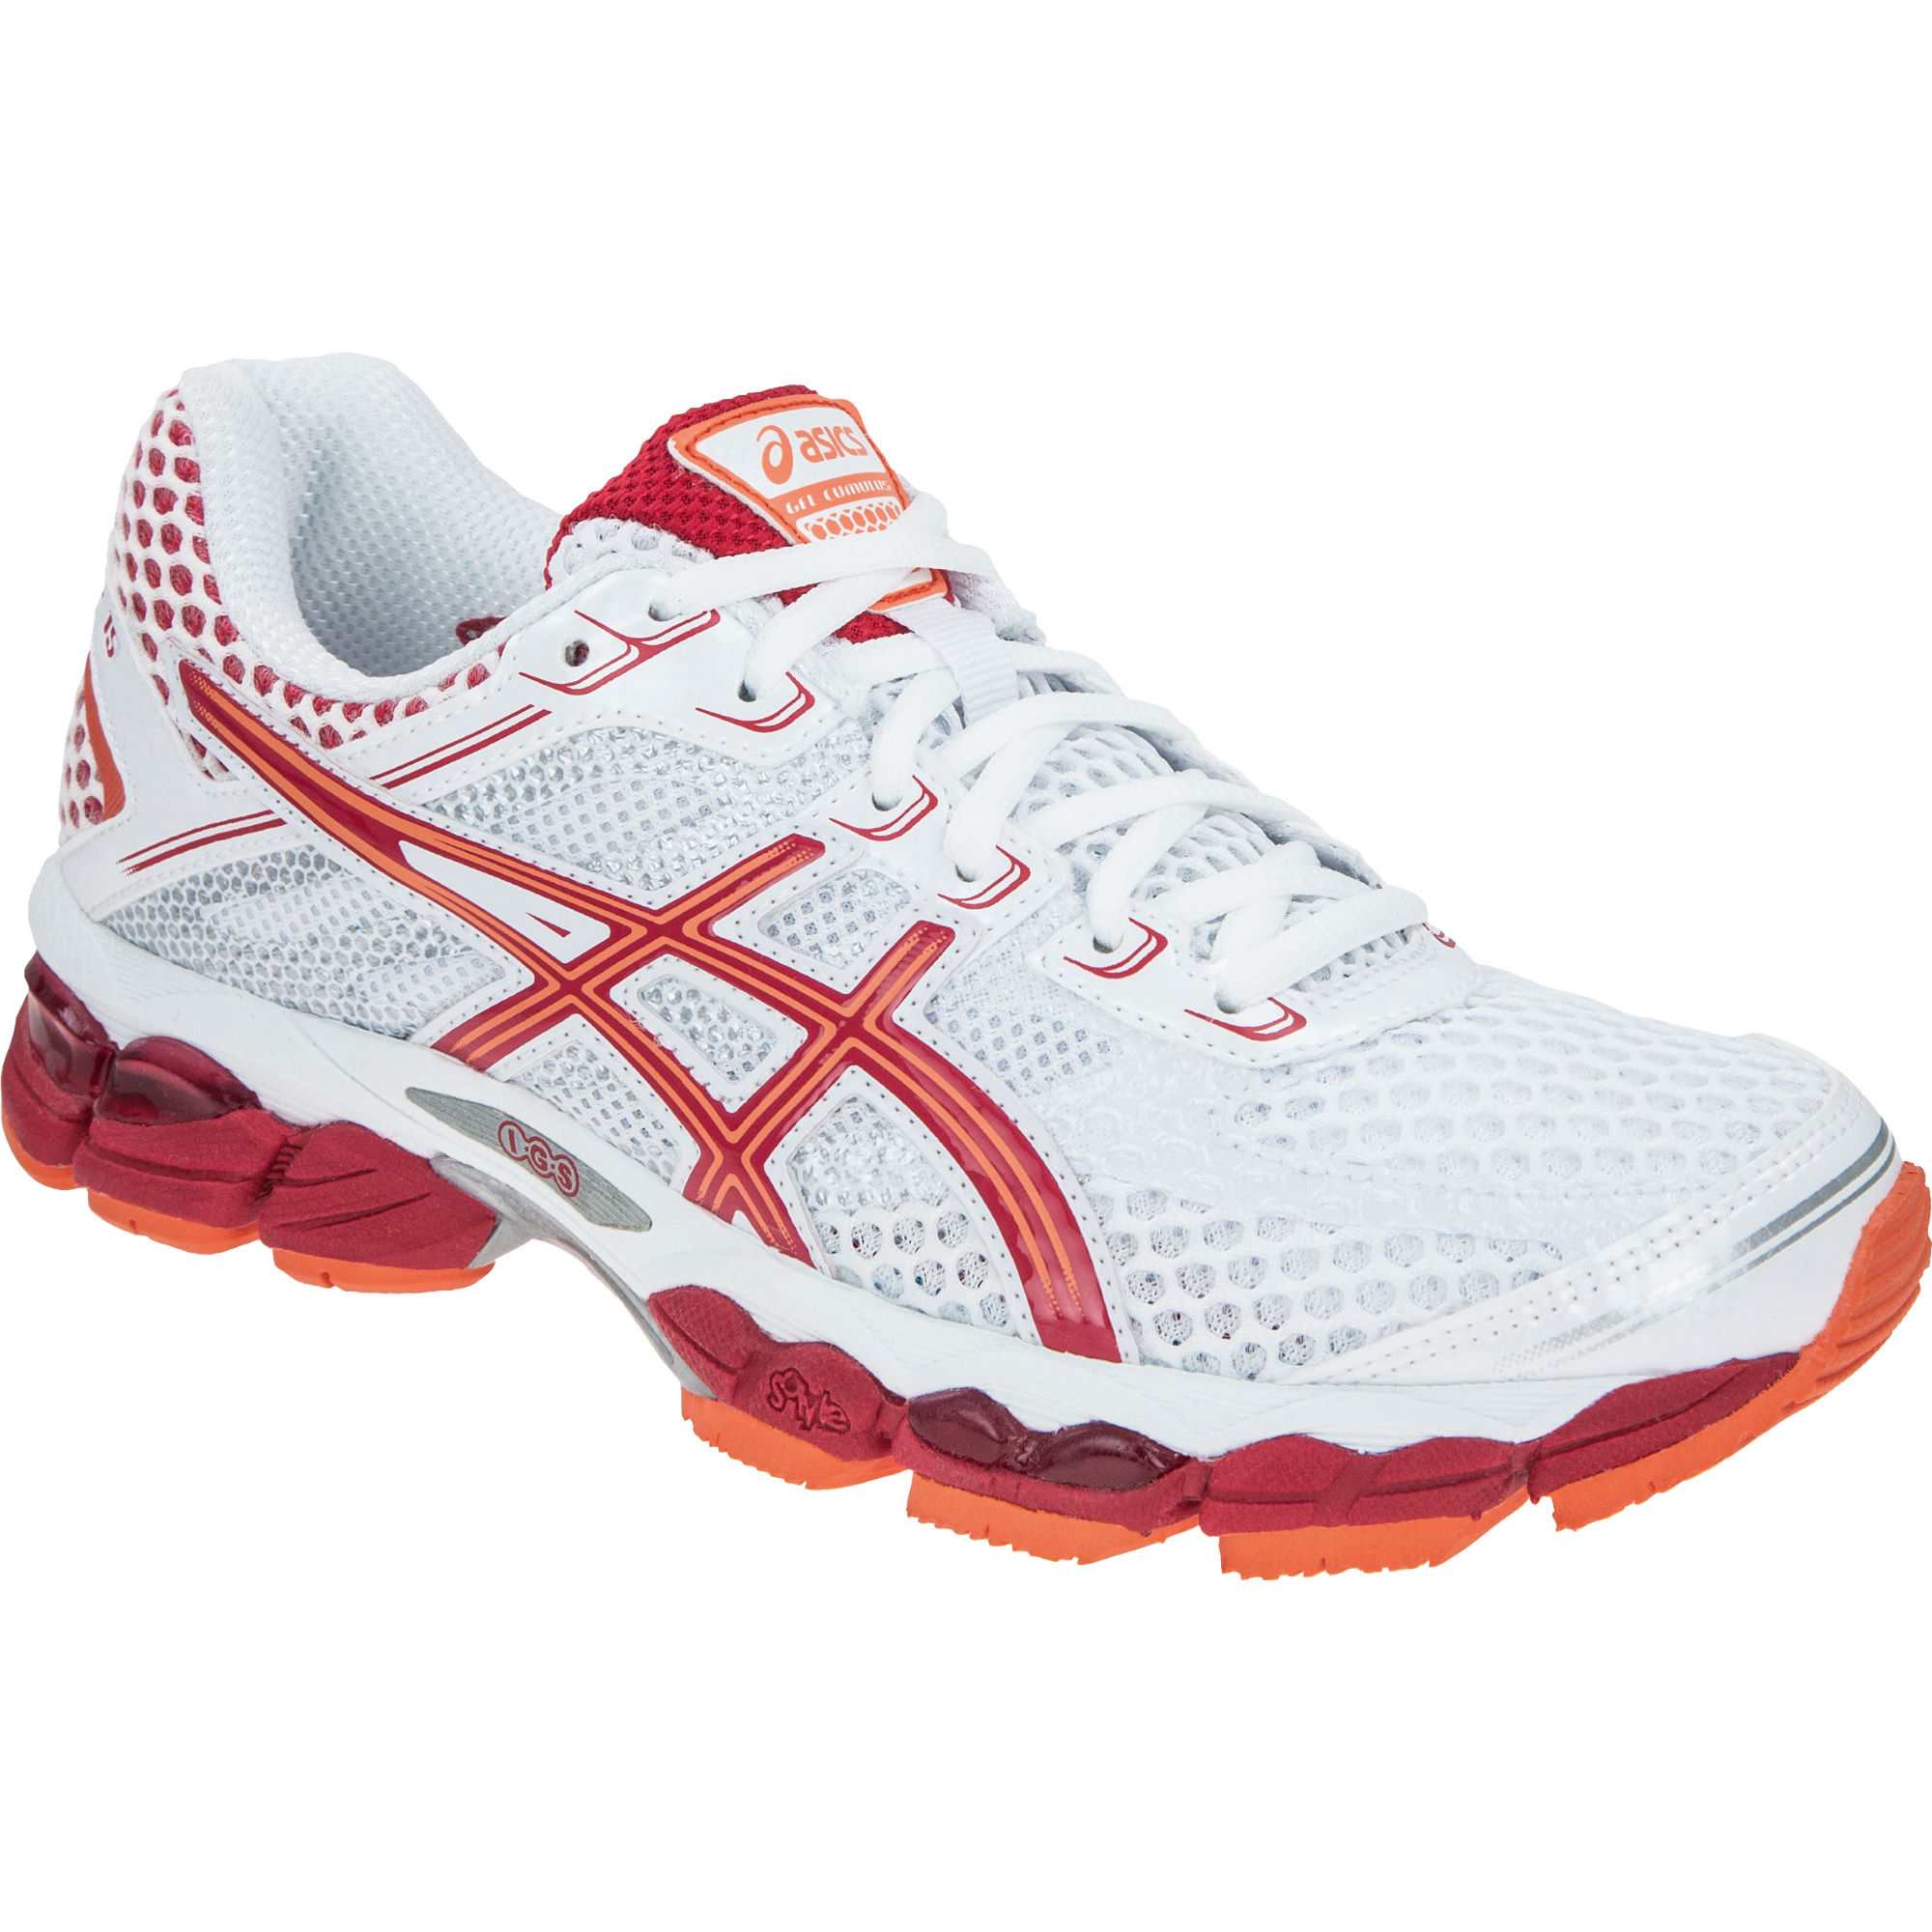 mmr7ycbh discount asics cumulus 15 women on clearance. Black Bedroom Furniture Sets. Home Design Ideas